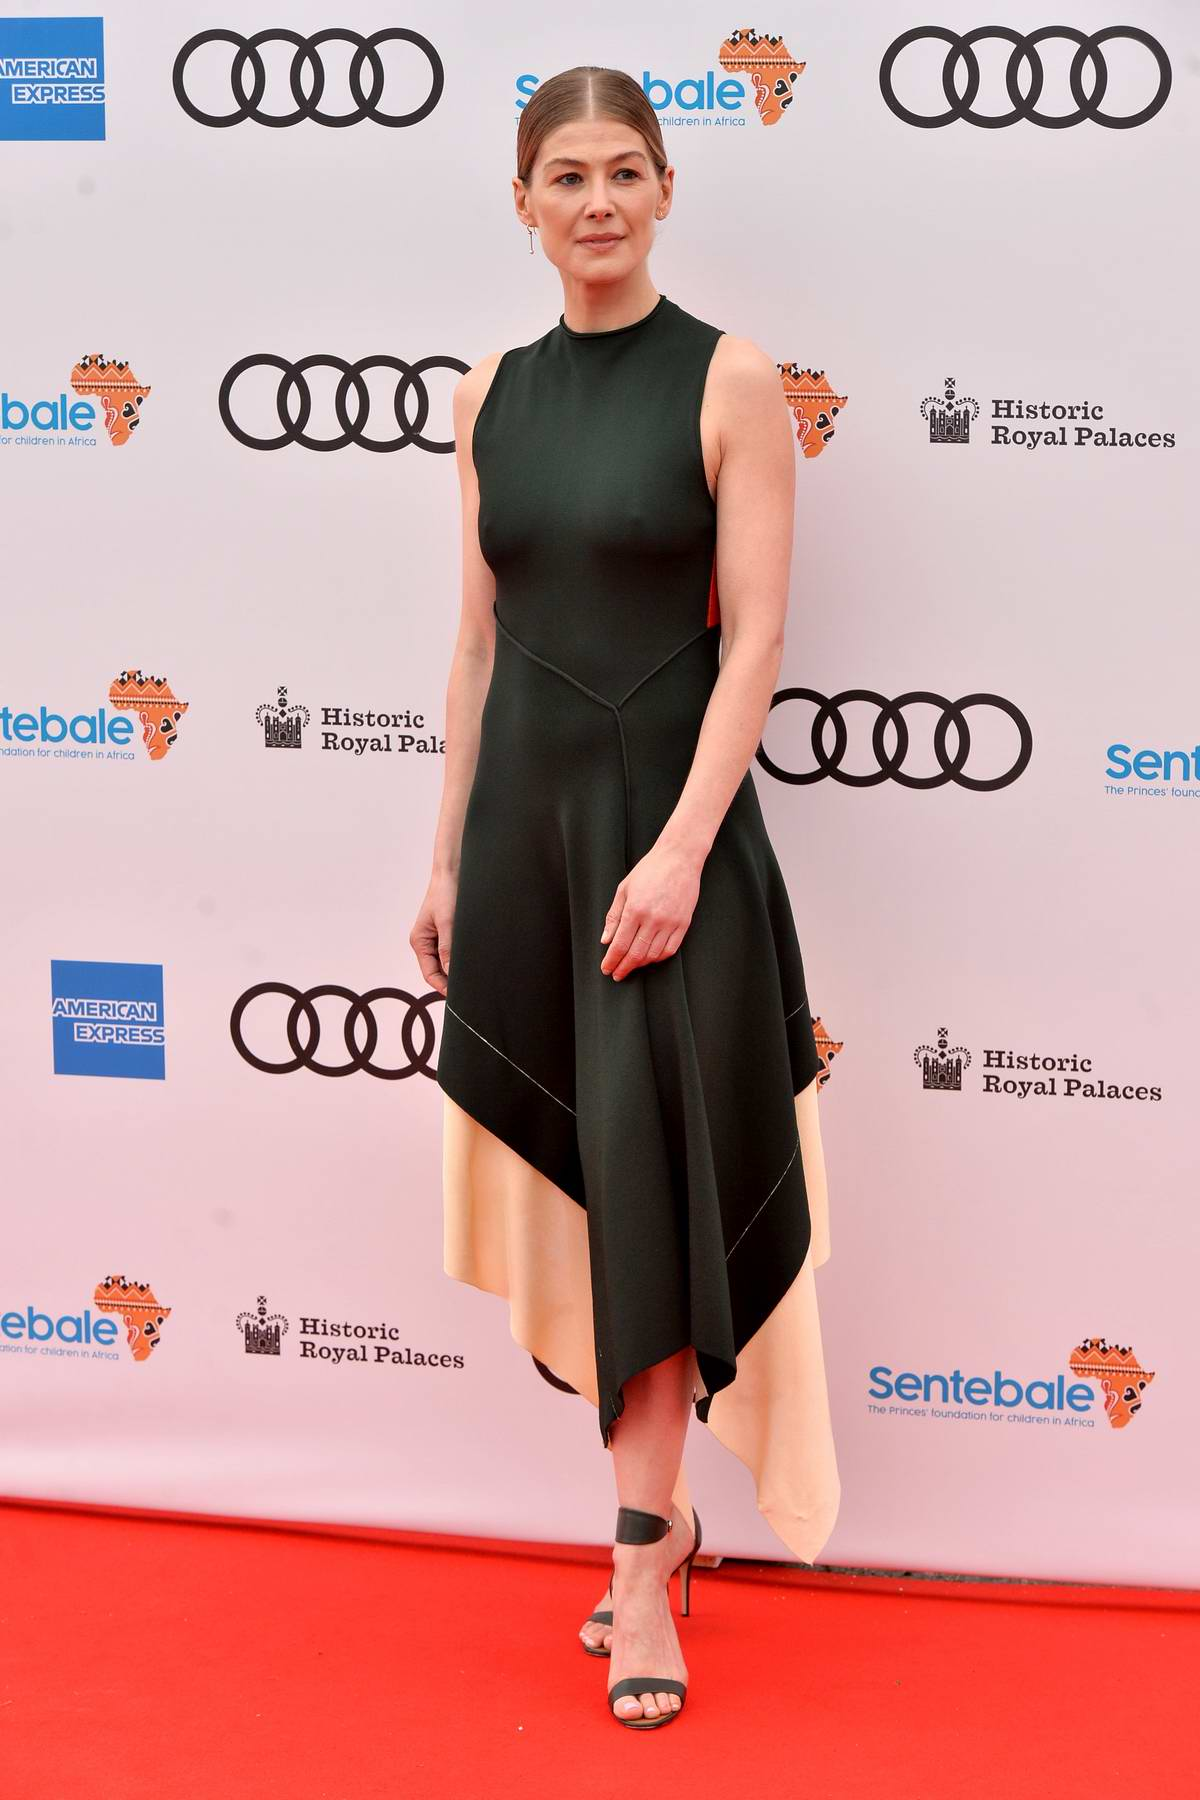 Rosamund Pike attends the Audi Sentebale Concert 2019 at Hampton Court Palace in London, UK